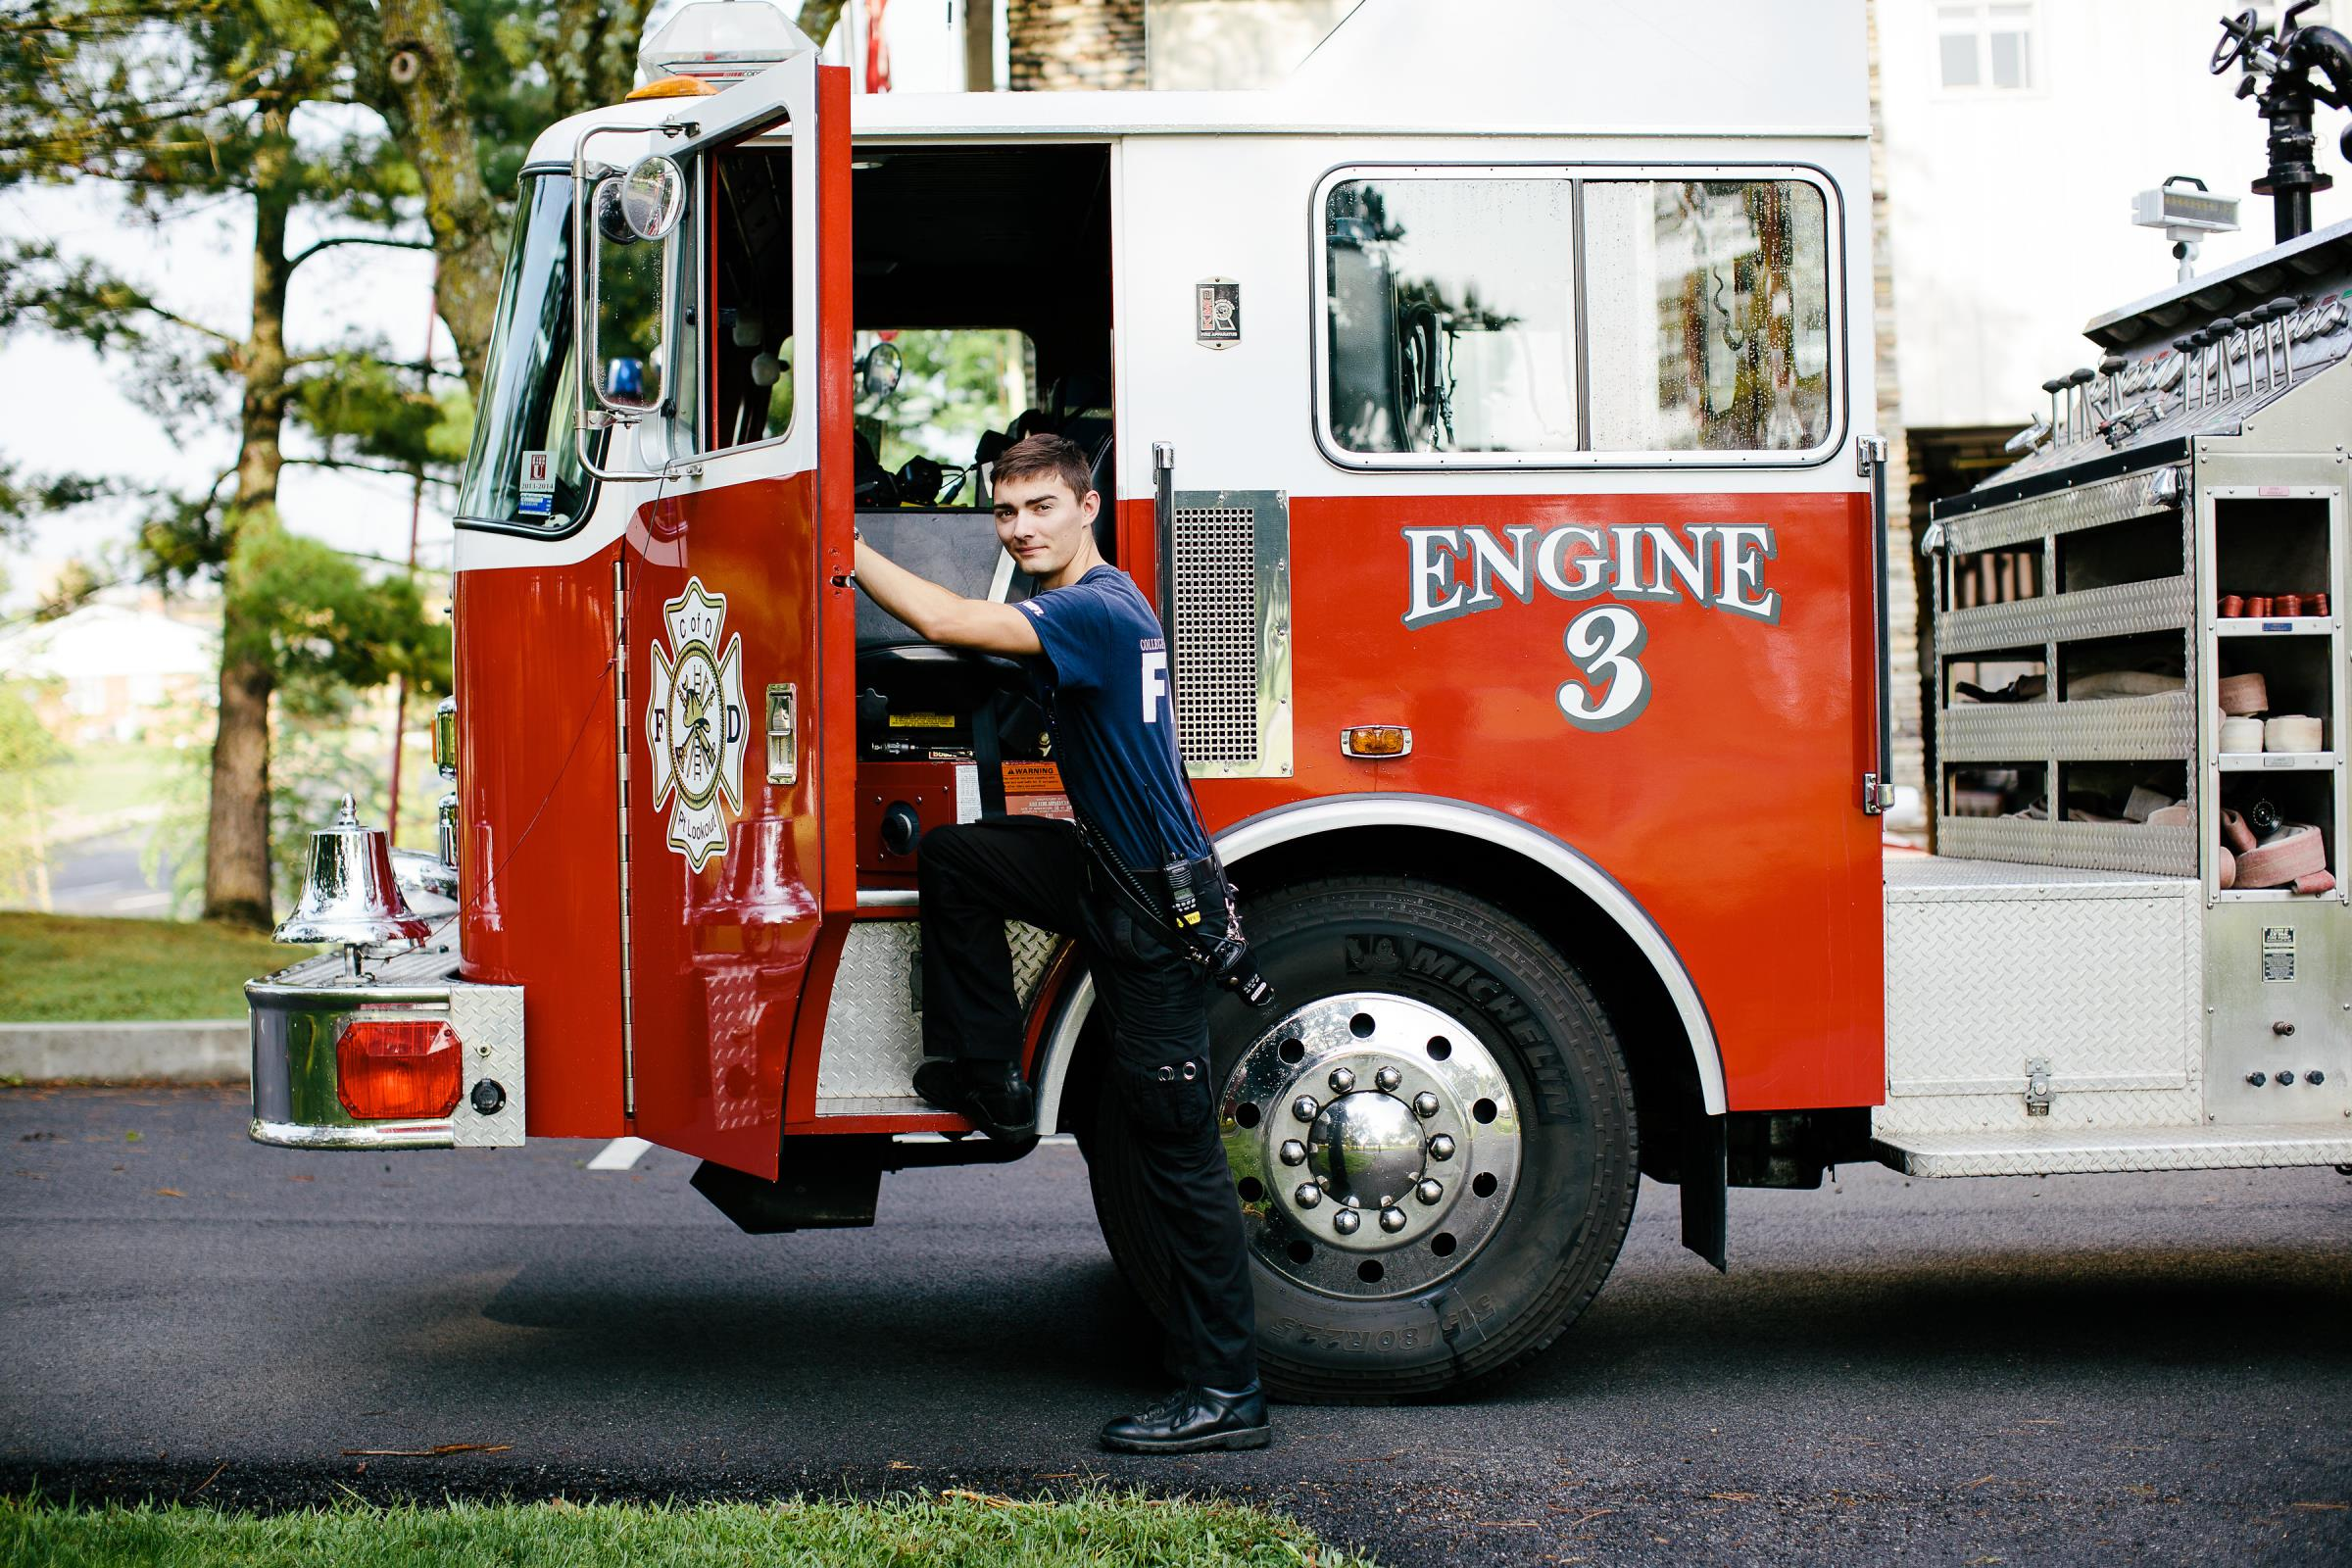 Fire Department student worker standing by a fire engine